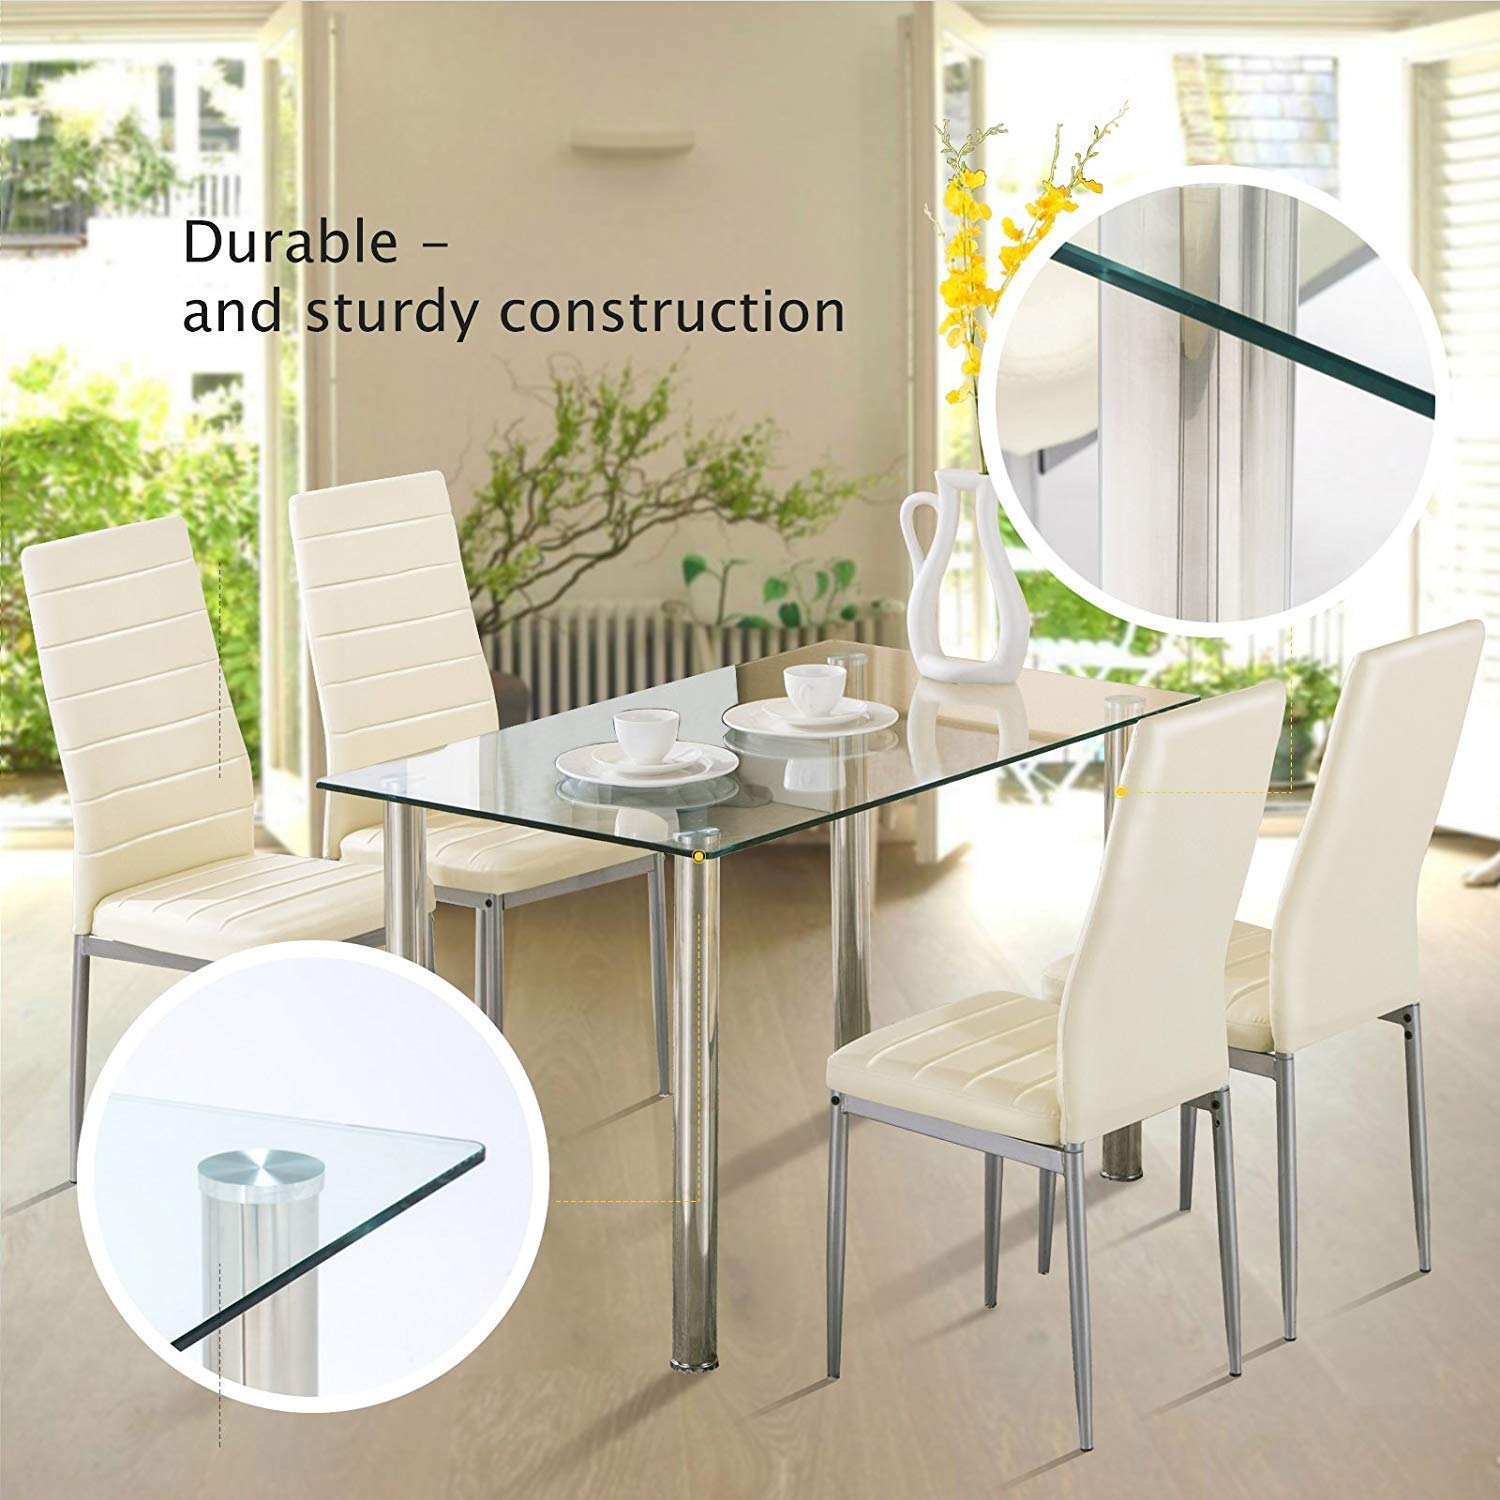 Mecor Dining Table Modern Minimallist Glass Kitchen Table Rectangular Transparent Metal Legs 47IN for 4/6 Persons,Clear by Mecor (Image #5)